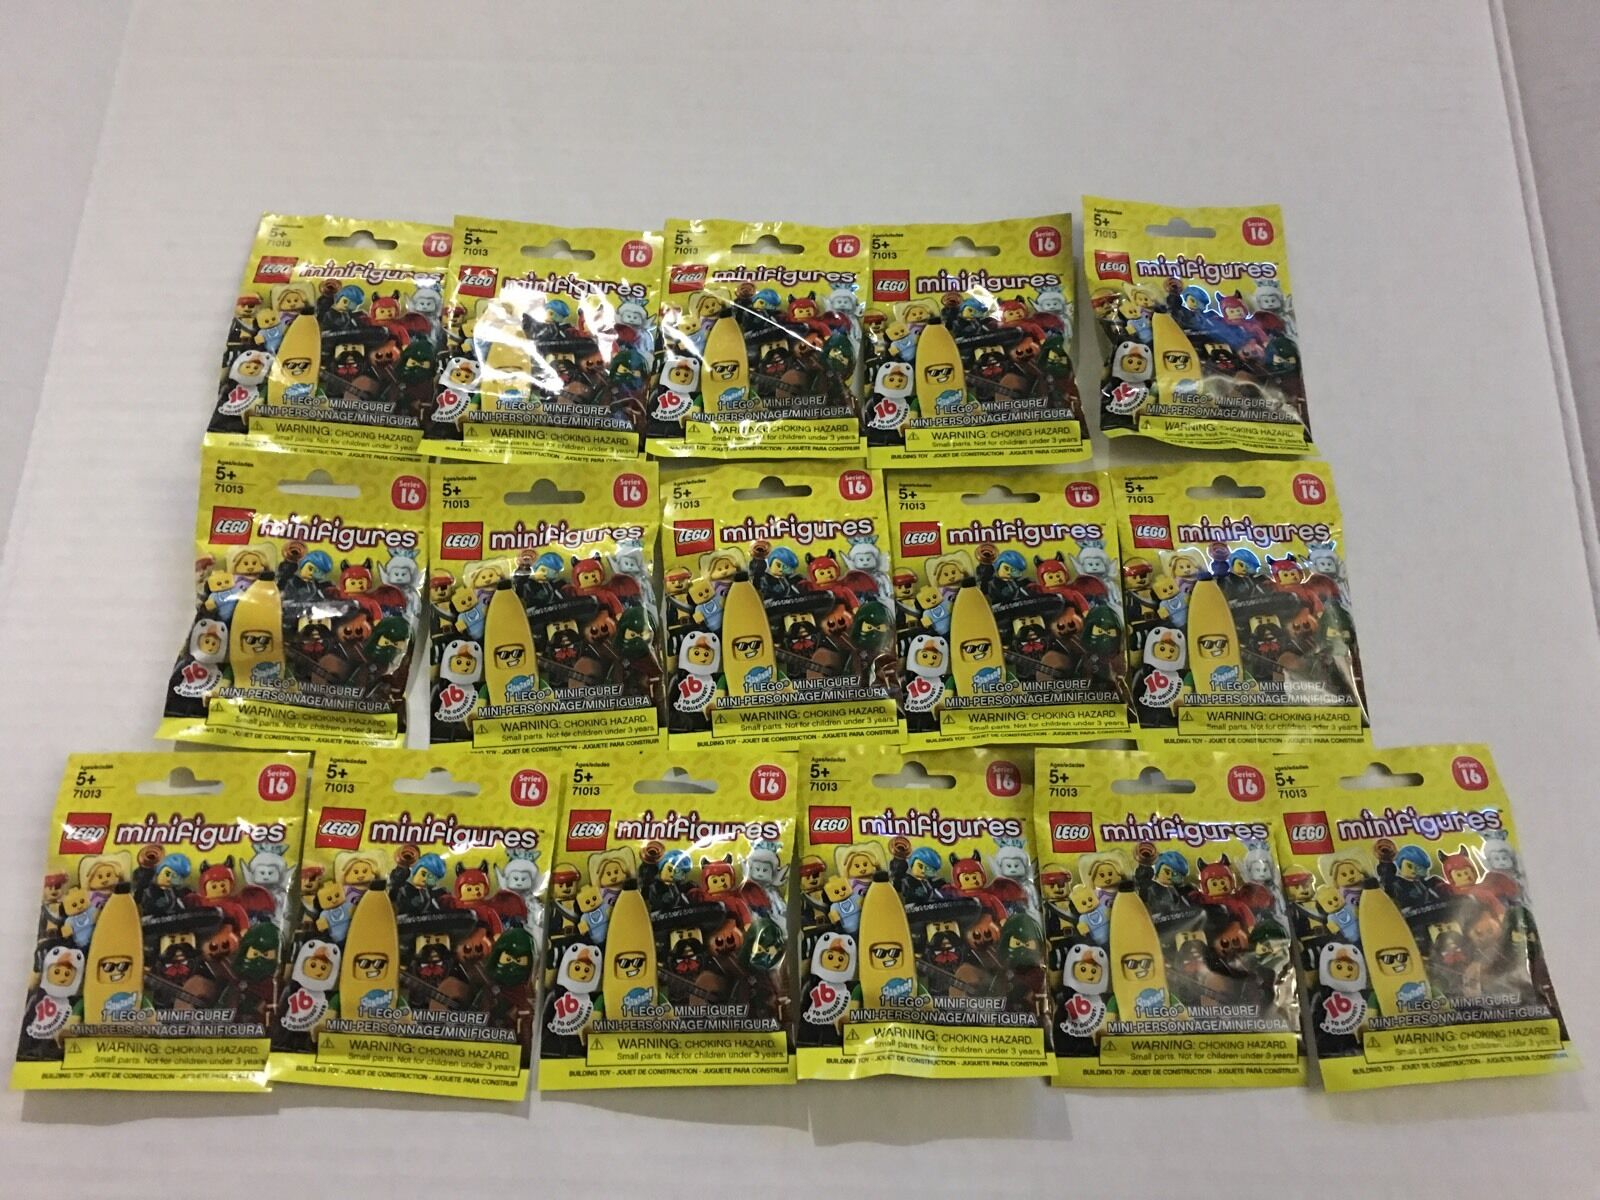 LOT 16 LEGO MINIFIGURES SERIES 16 COMPLETE SET NEW  IN HAND READY TO SHIP.